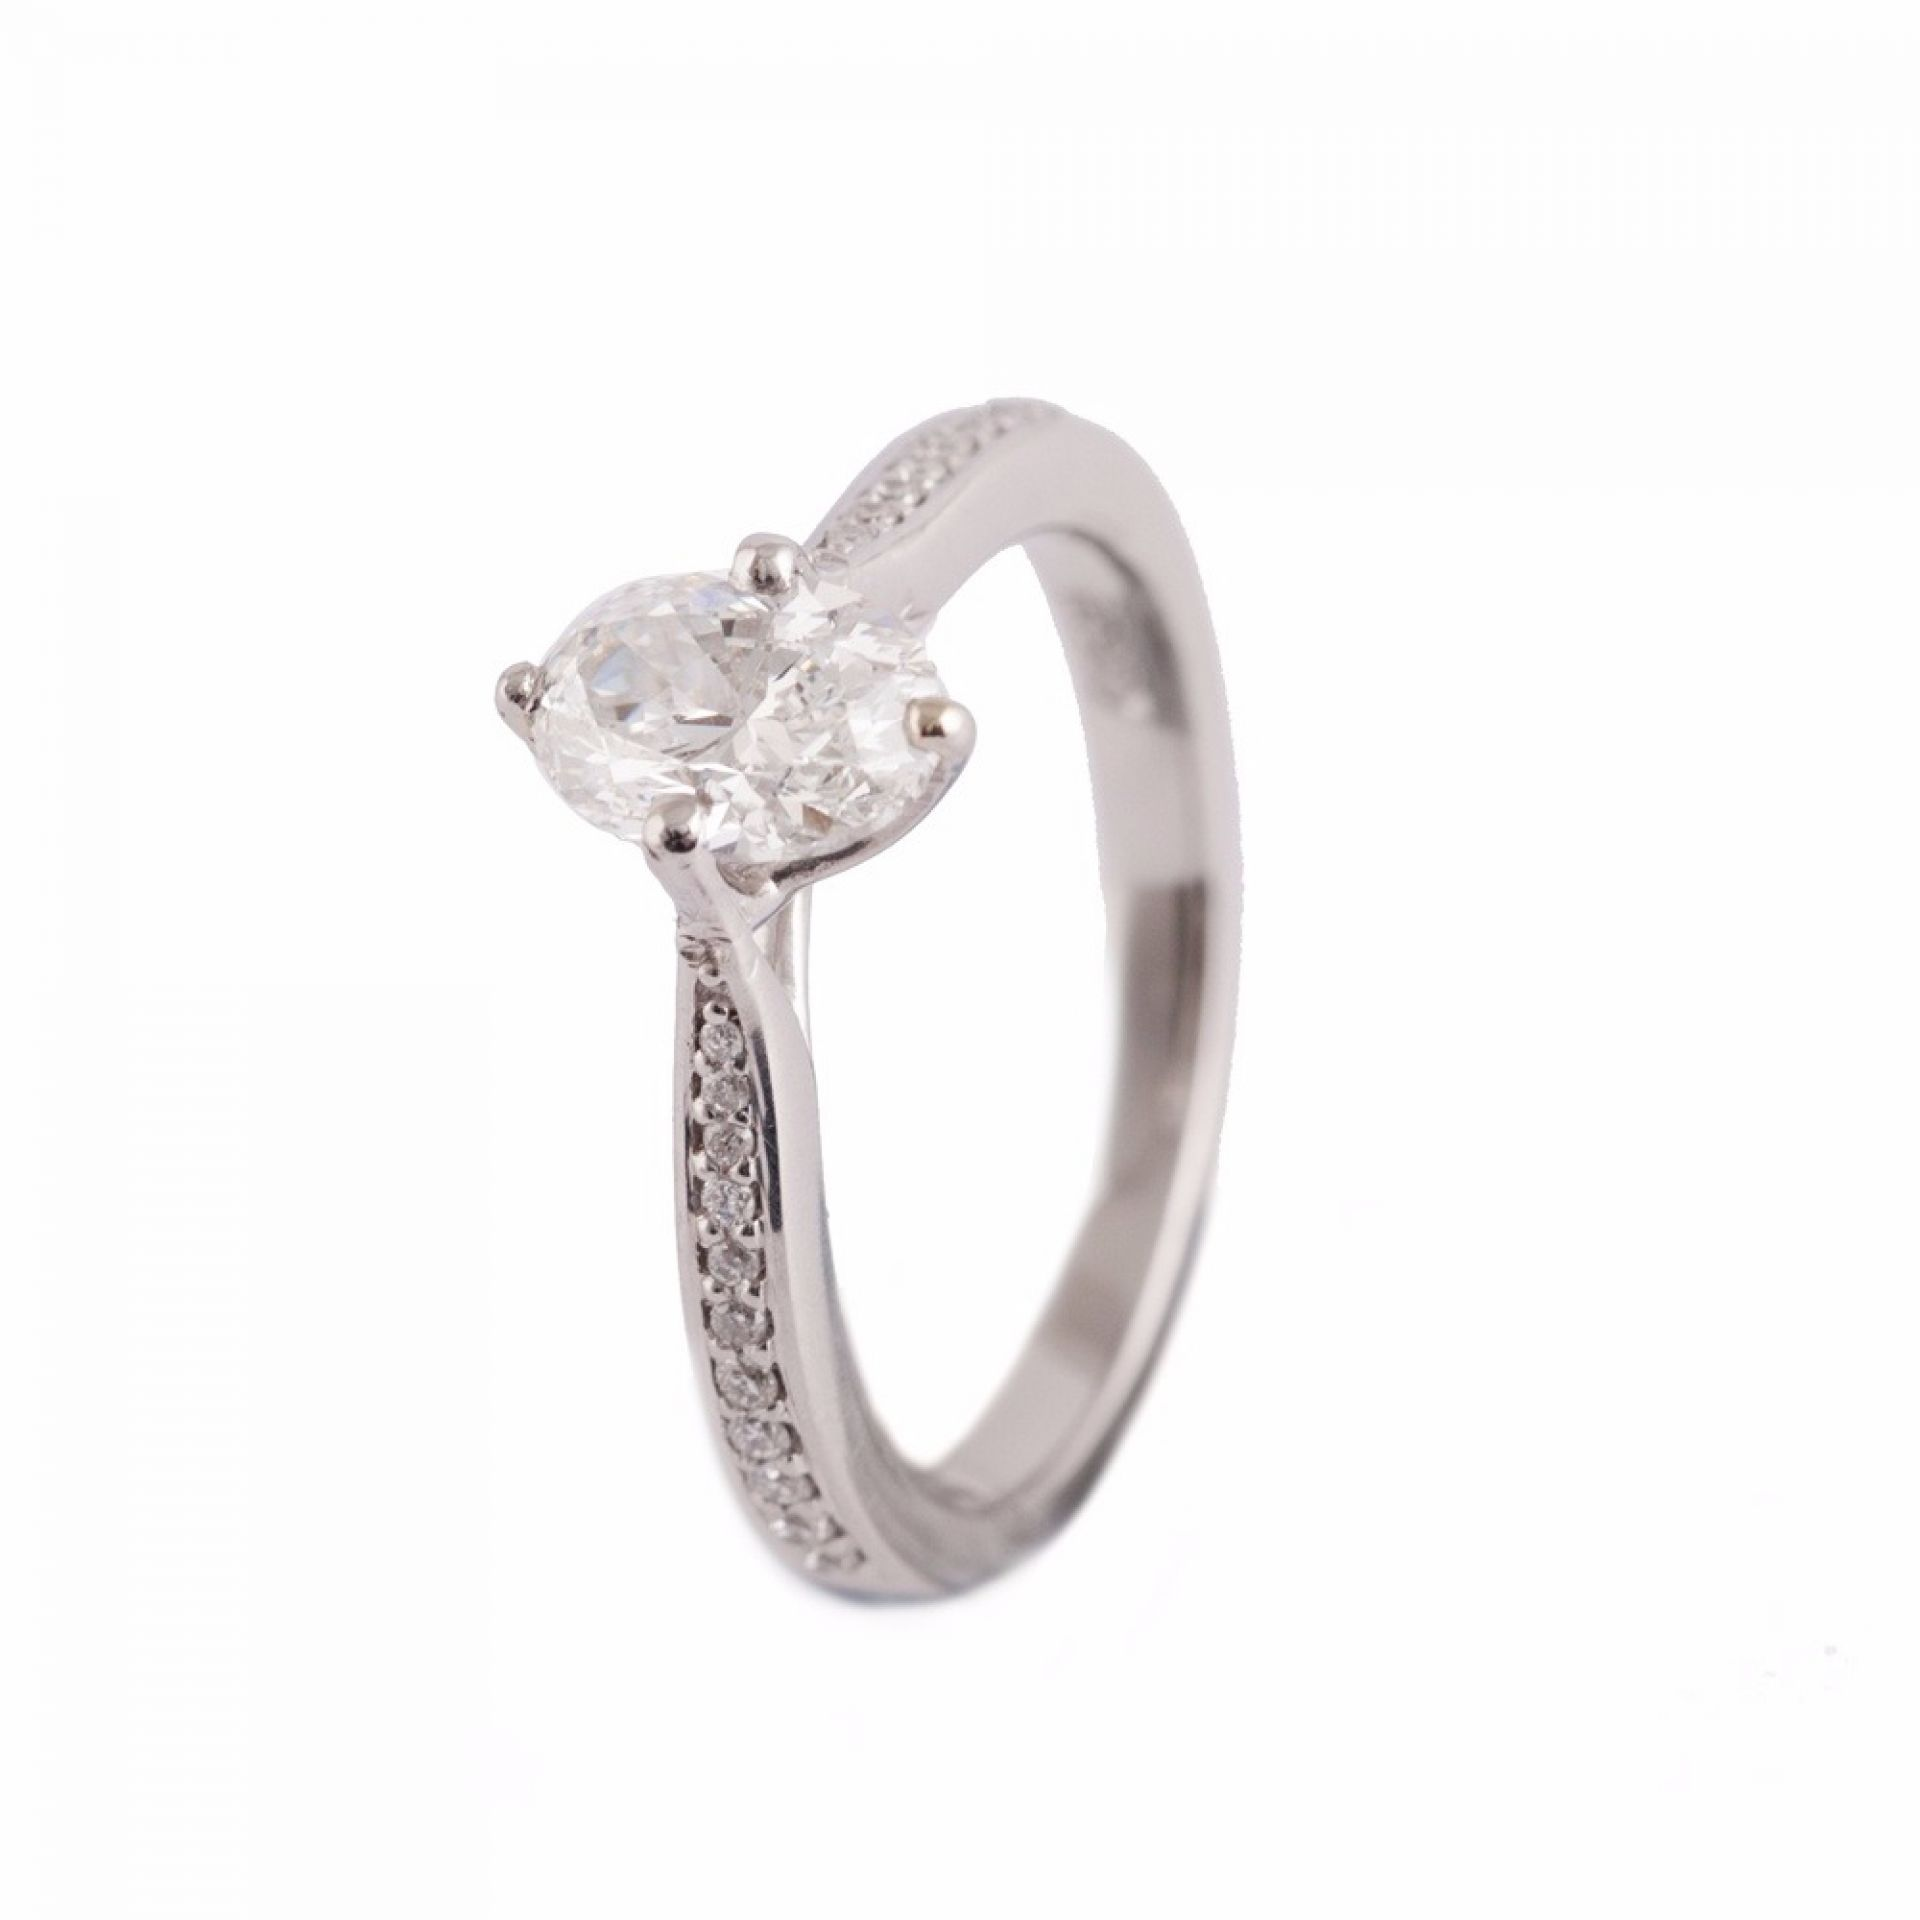 PLATINUM GIA OVAL CUT DIAMOND RING WITH SHOULDERS